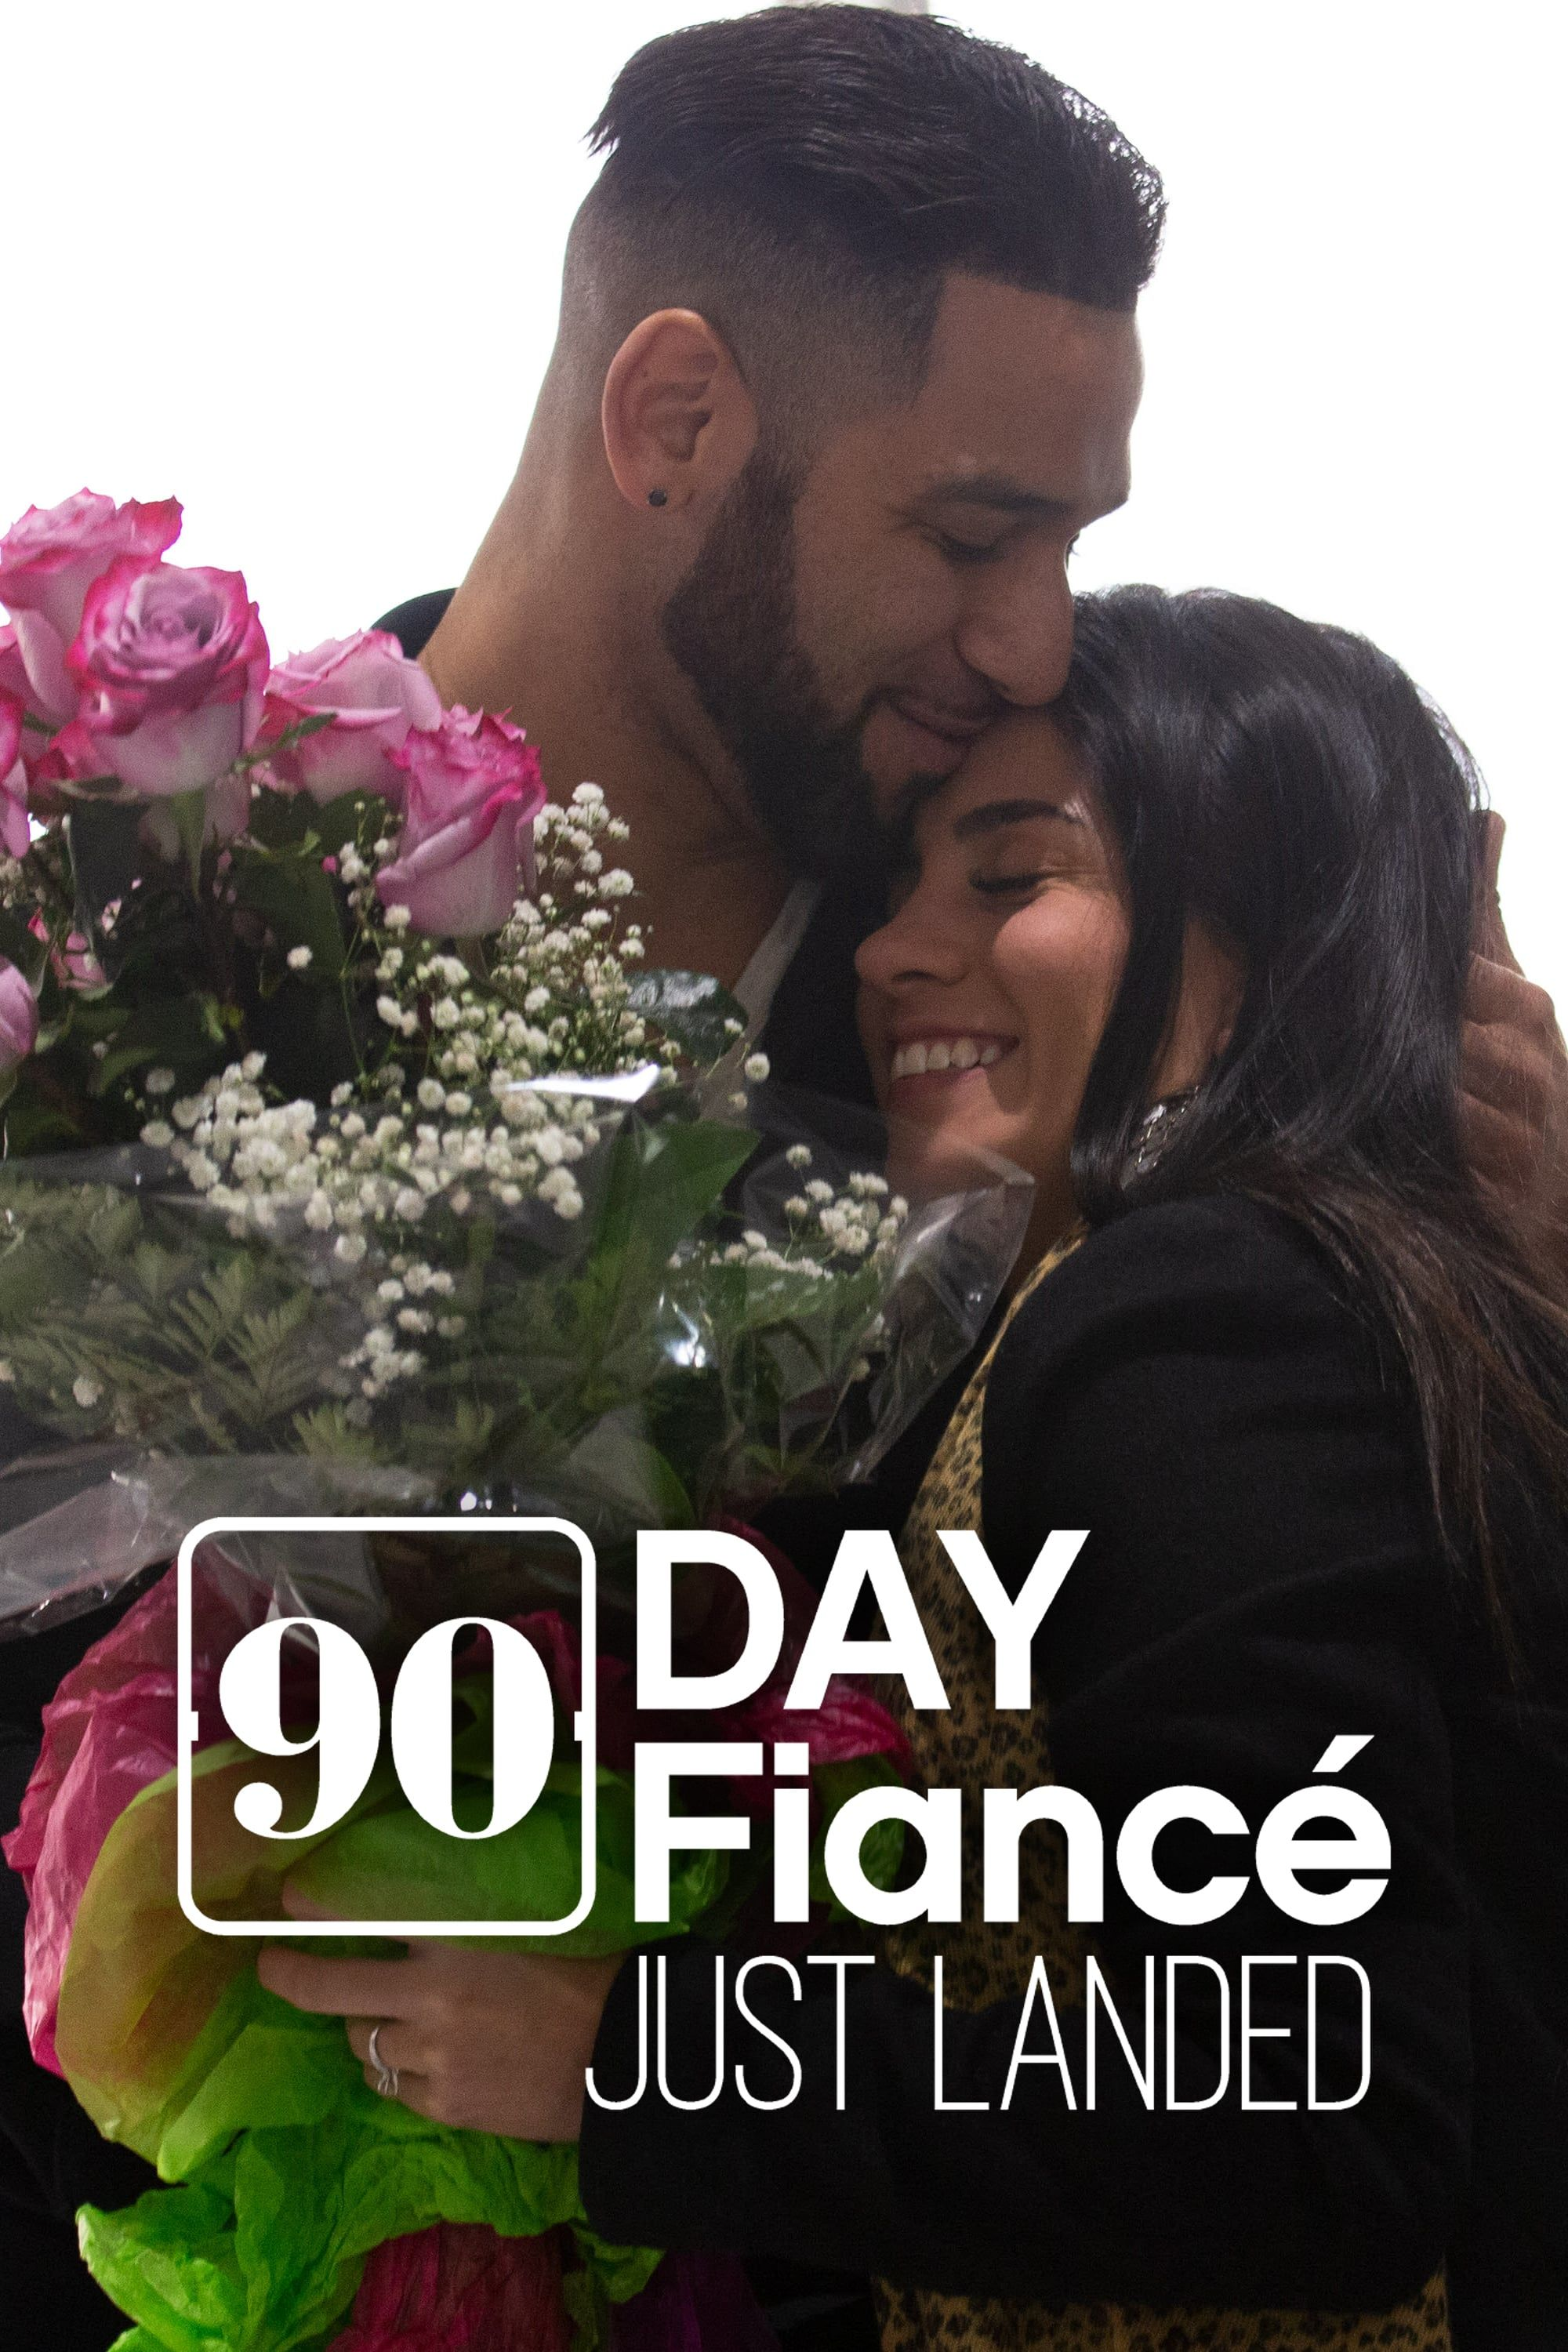 90 Day Fiancé: Just Landed ne zaman